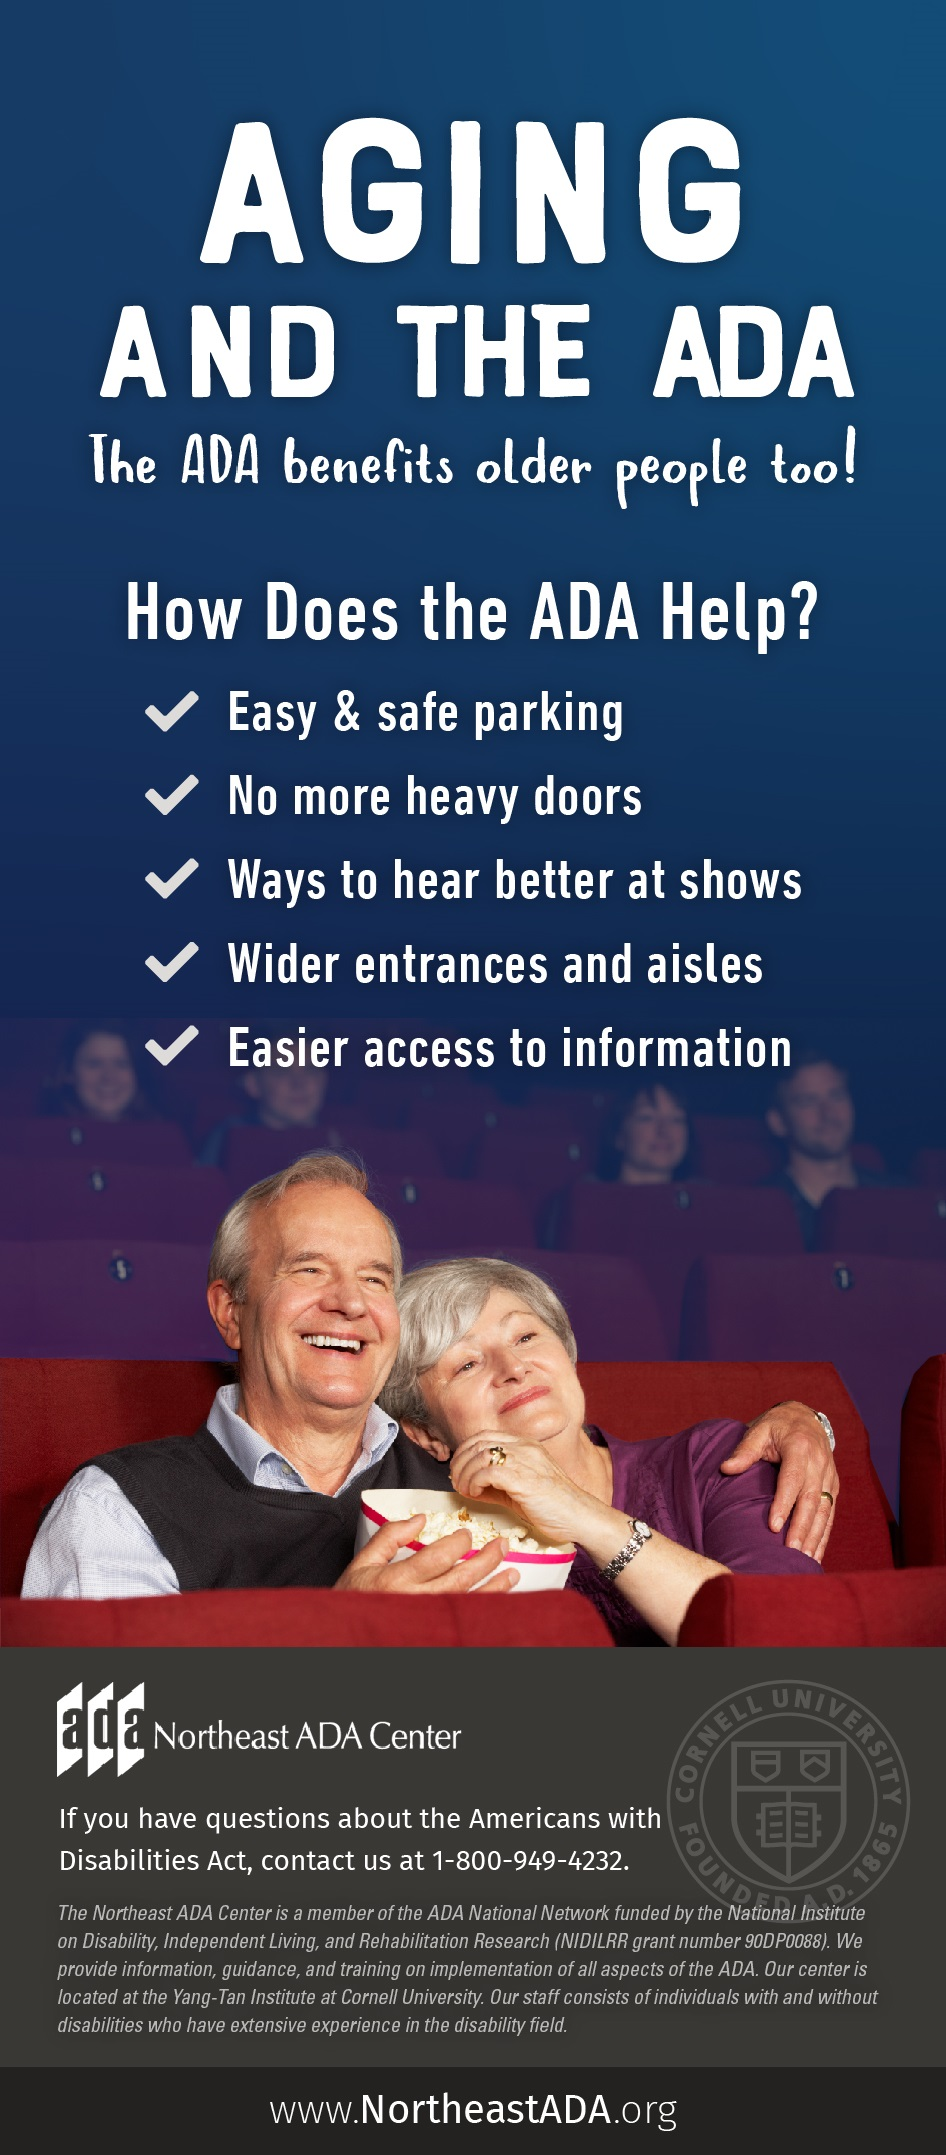 Infographic titled 'Aging and the ADA' featuring a senior couple in a movie theater.